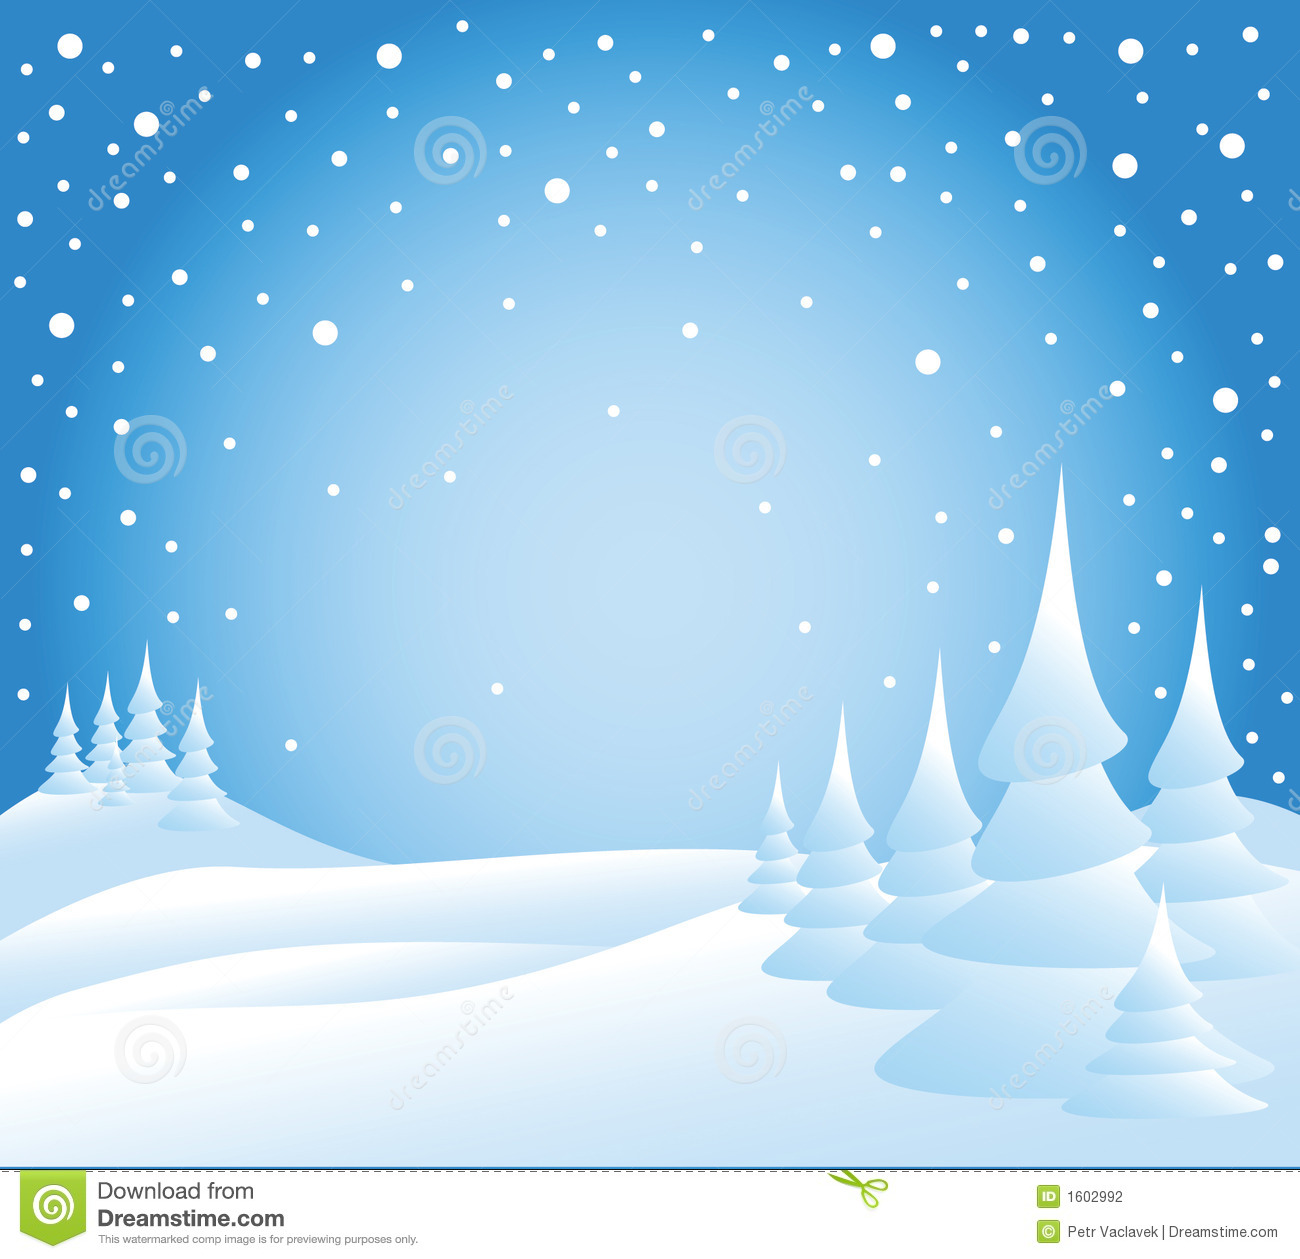 Snow falling clipart.